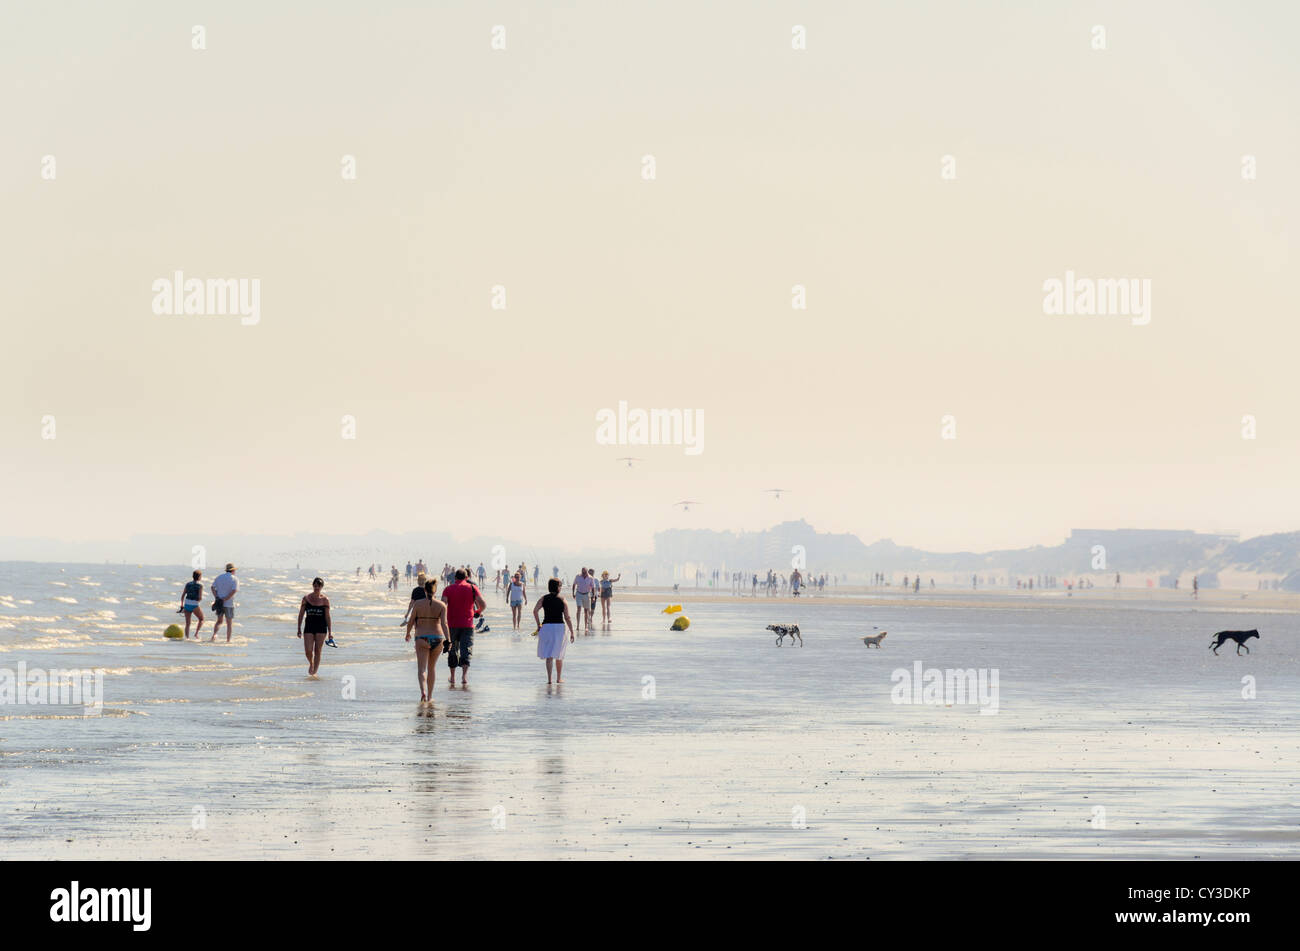 Dunkirk beach, Northern France - Stock Image